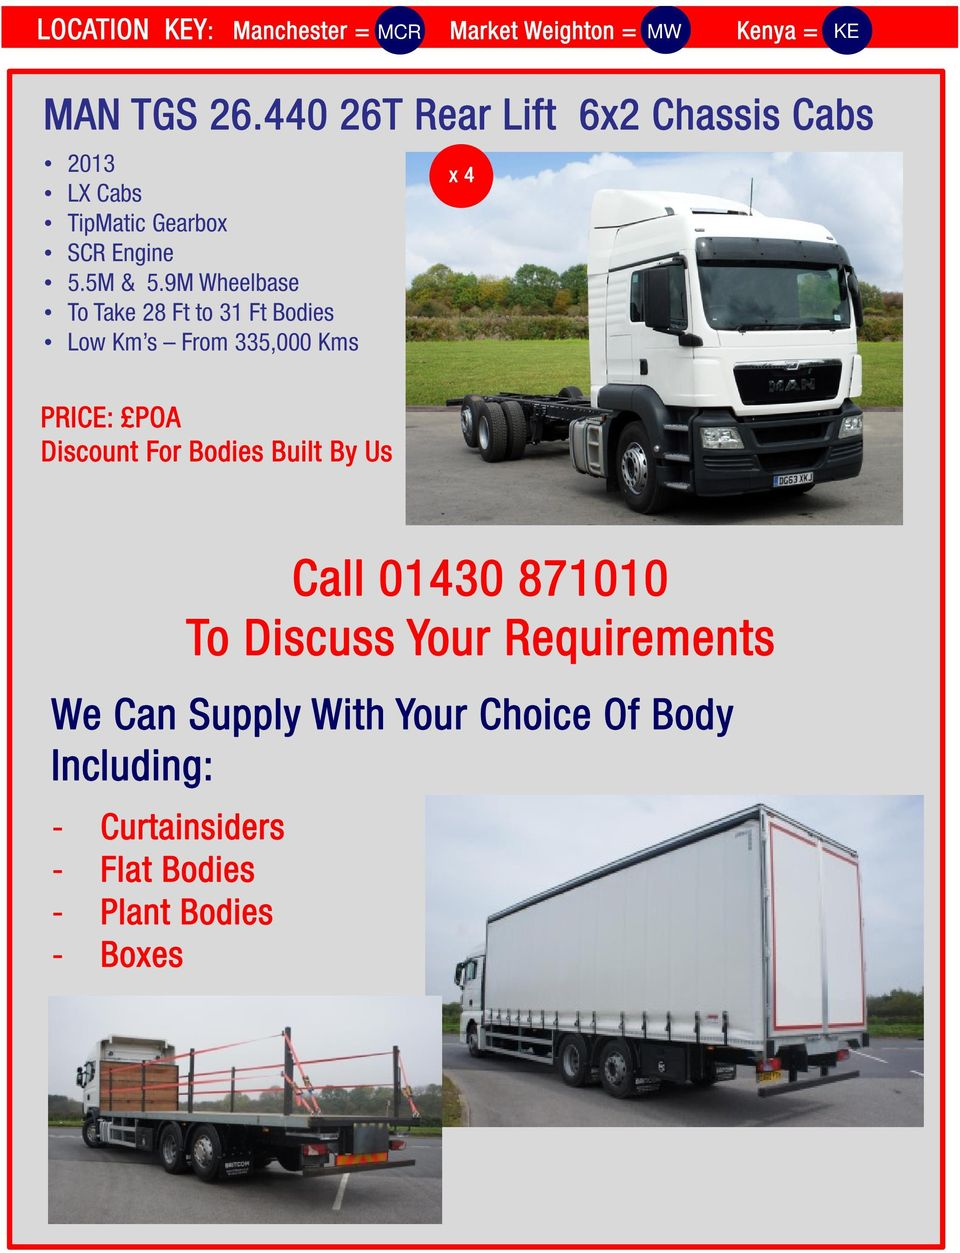 9M Wheelbase To Take 28 Ft to 31 Ft Bodies Low Km s From 335,000 Kms x4 Discount For Bodies